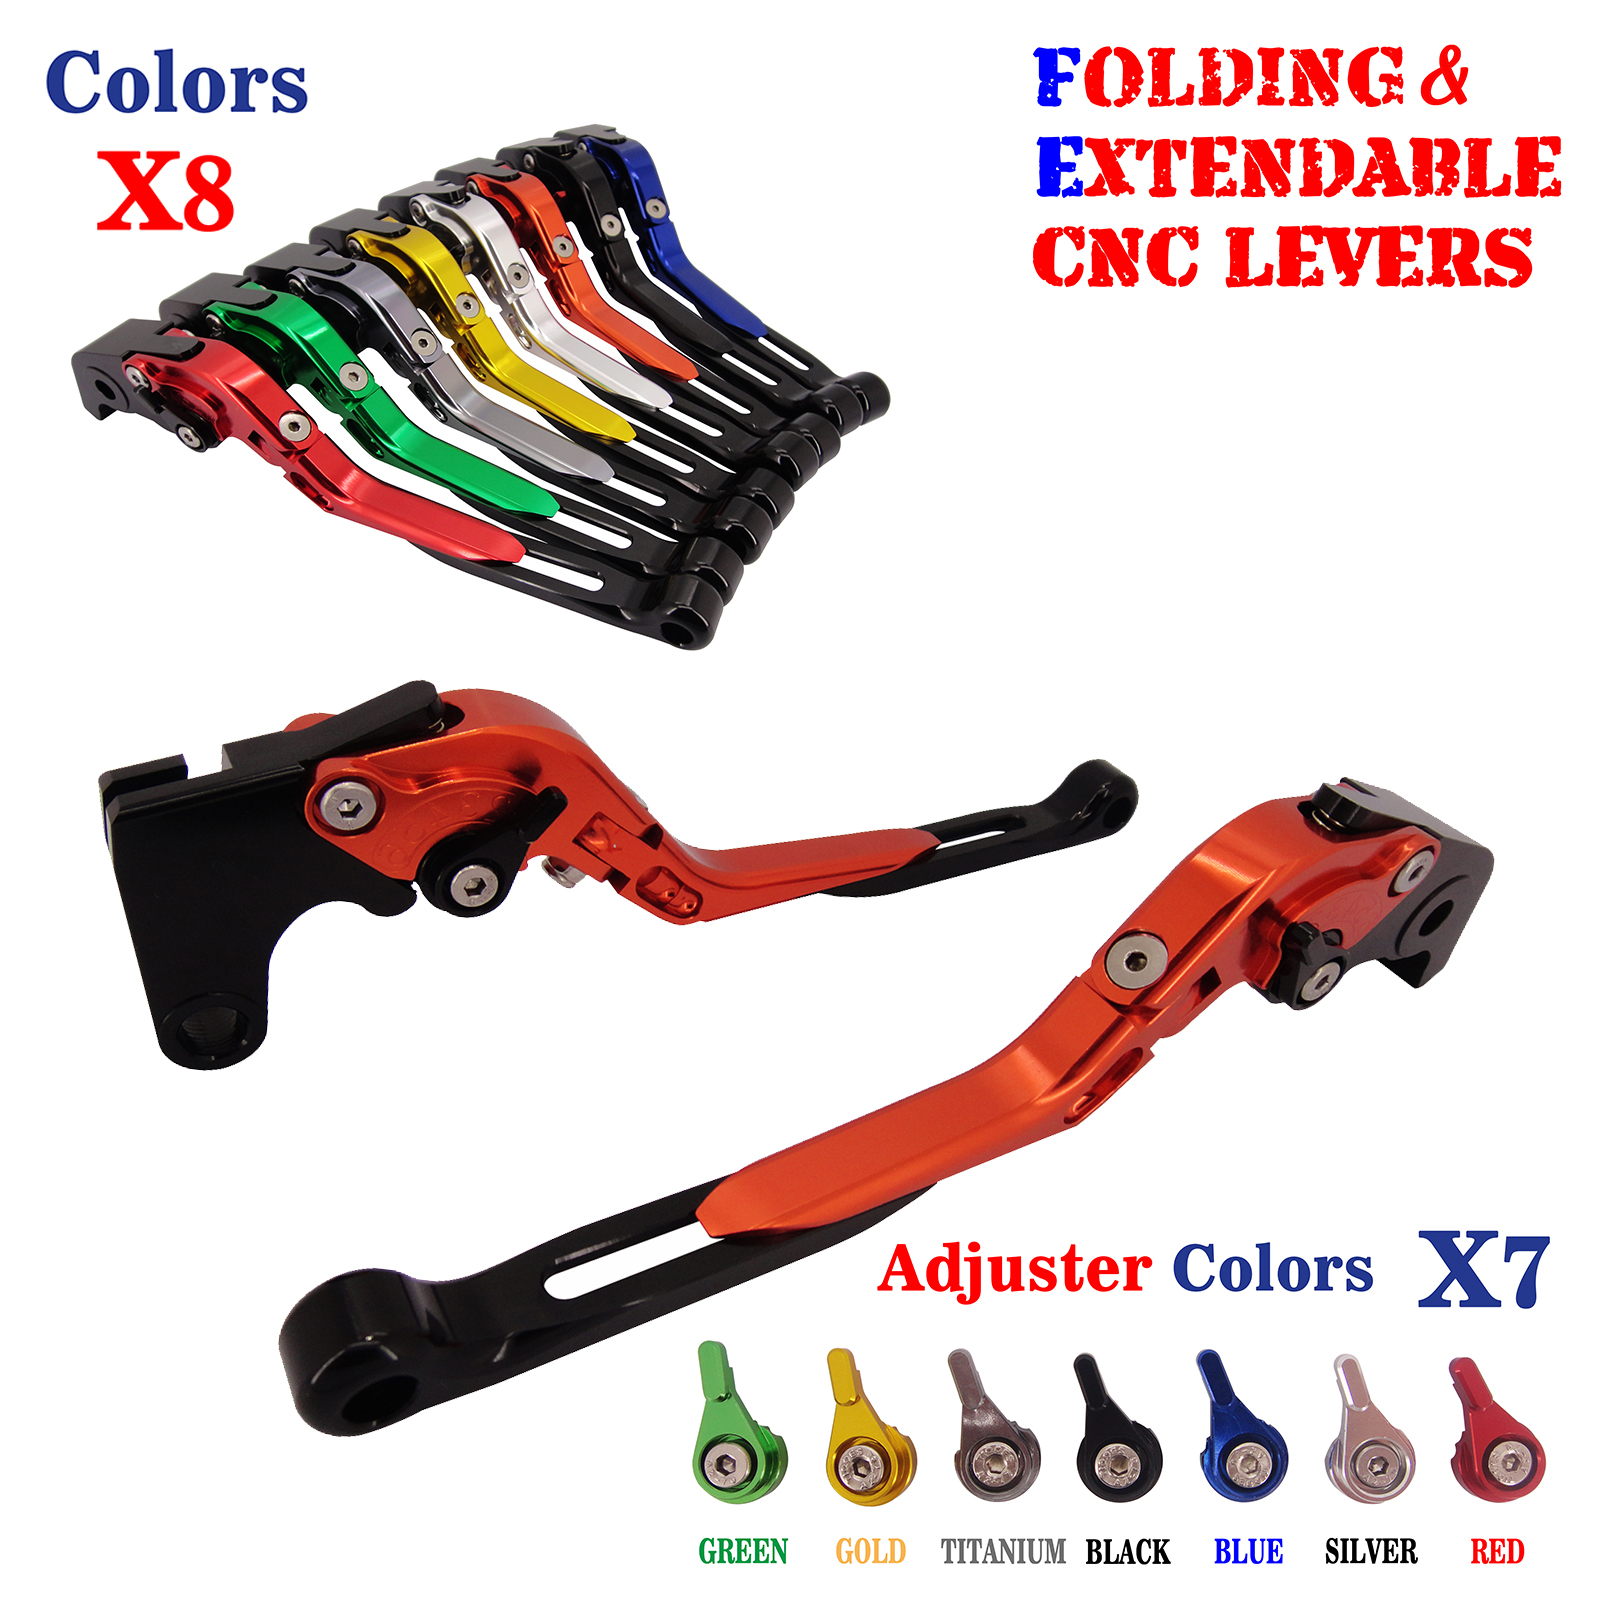 CNC Folding Extendable Brake Clutch Levers For Honda CBR250R CBR300R /CB300F/FA CBR500R/CB500F/X 2013 2014 2015 billet new alu long folding adjustable brake clutch levers for honda cbr250r cbr 250 r 11 13 cbr300r 14 cbr500r cb500f x 13 14